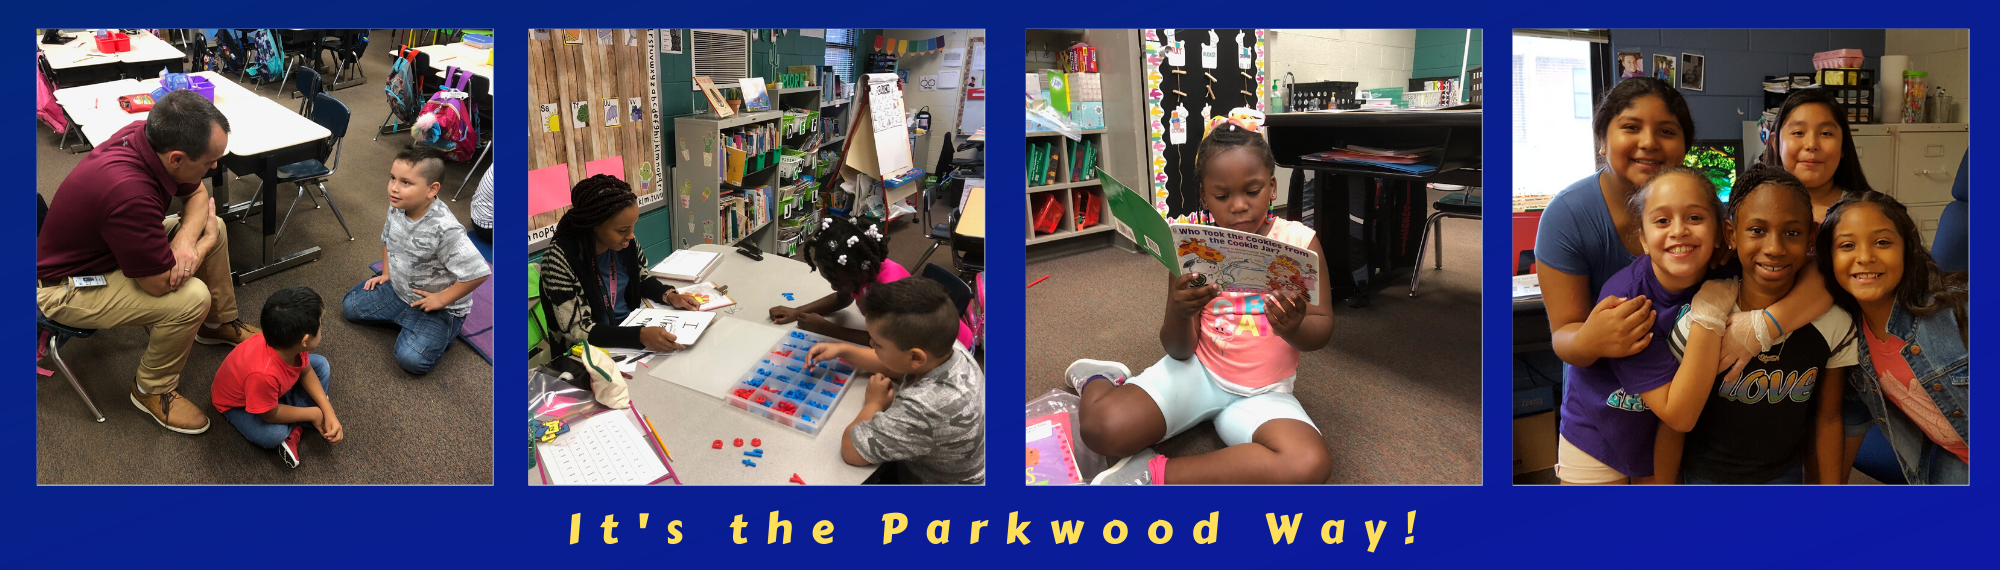 It's the Parkwood Way!